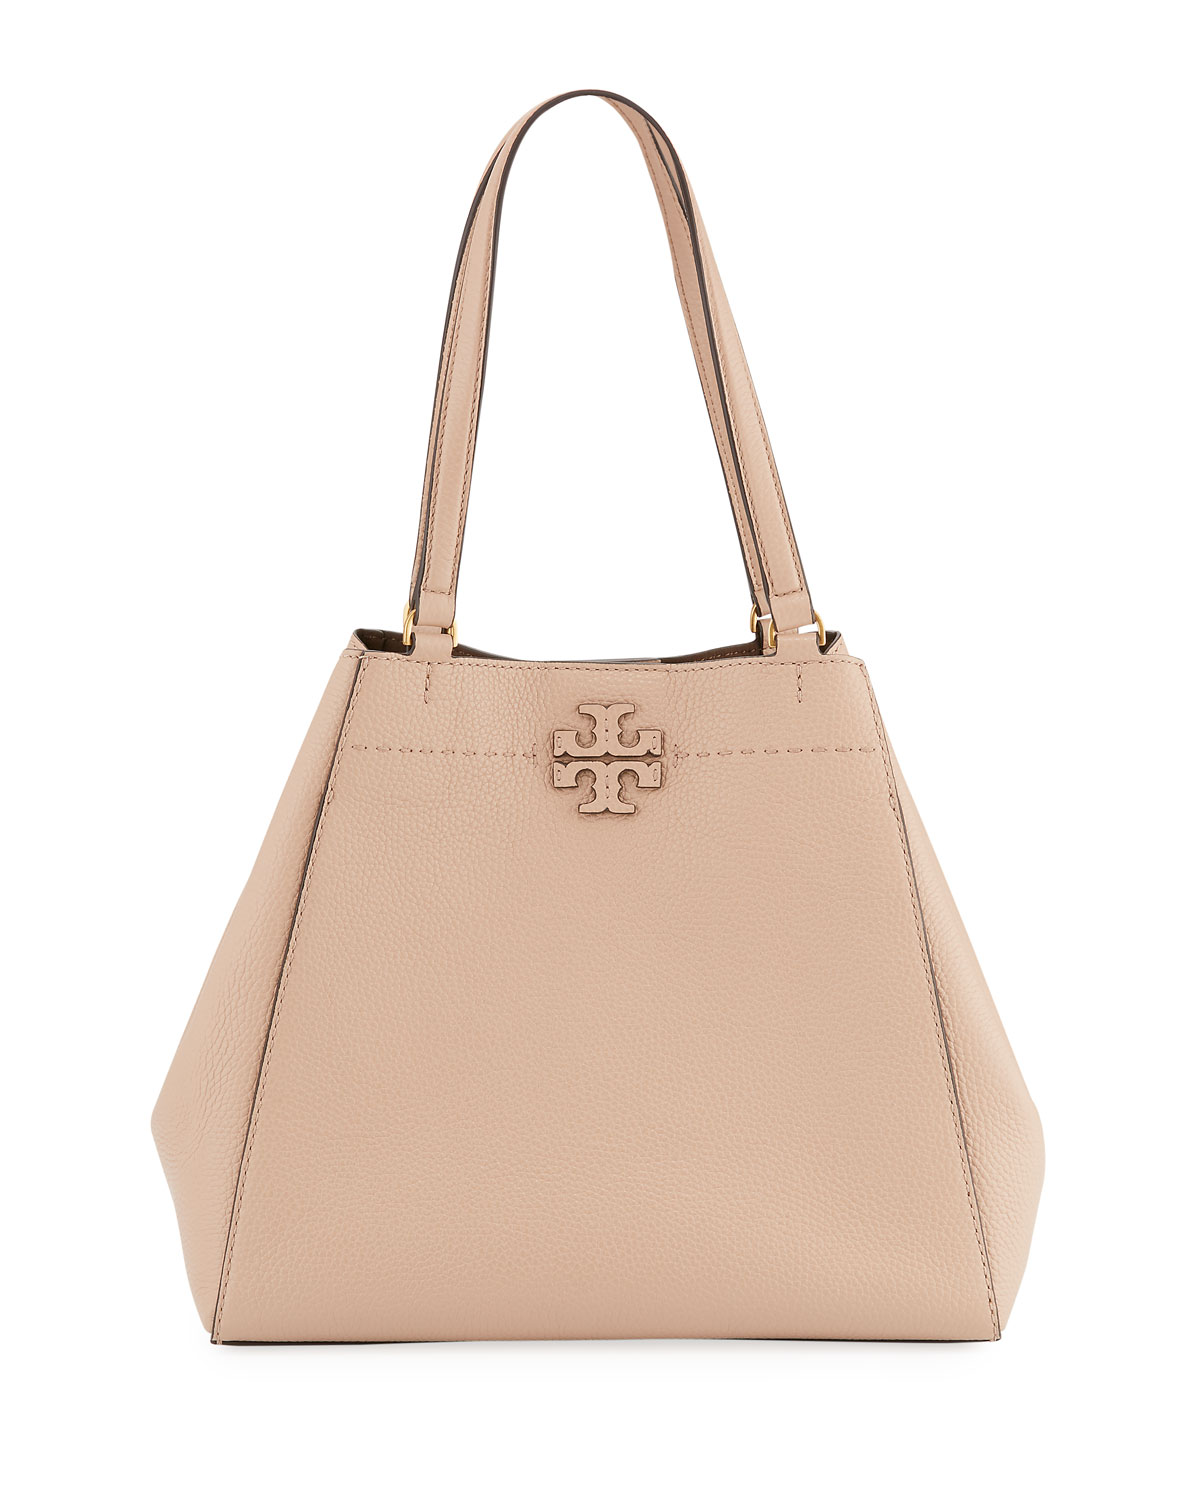 f9f4beaf27c5 Tory Burch McGraw Carryall Leather Tote Bag